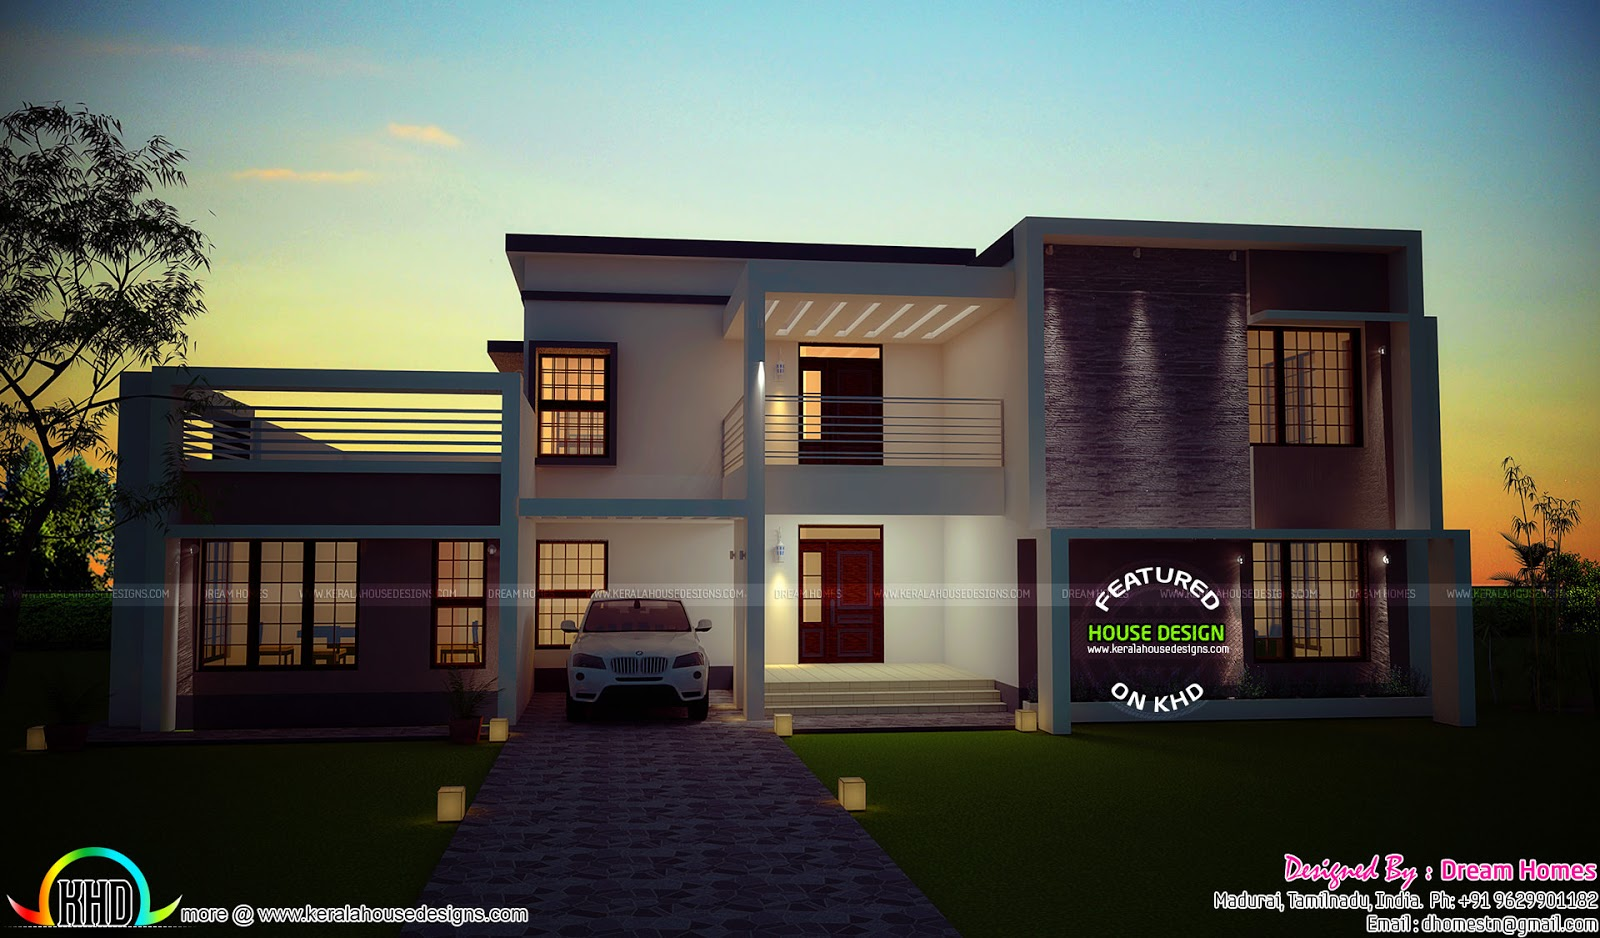 340 sq m 3 bedroom home plan